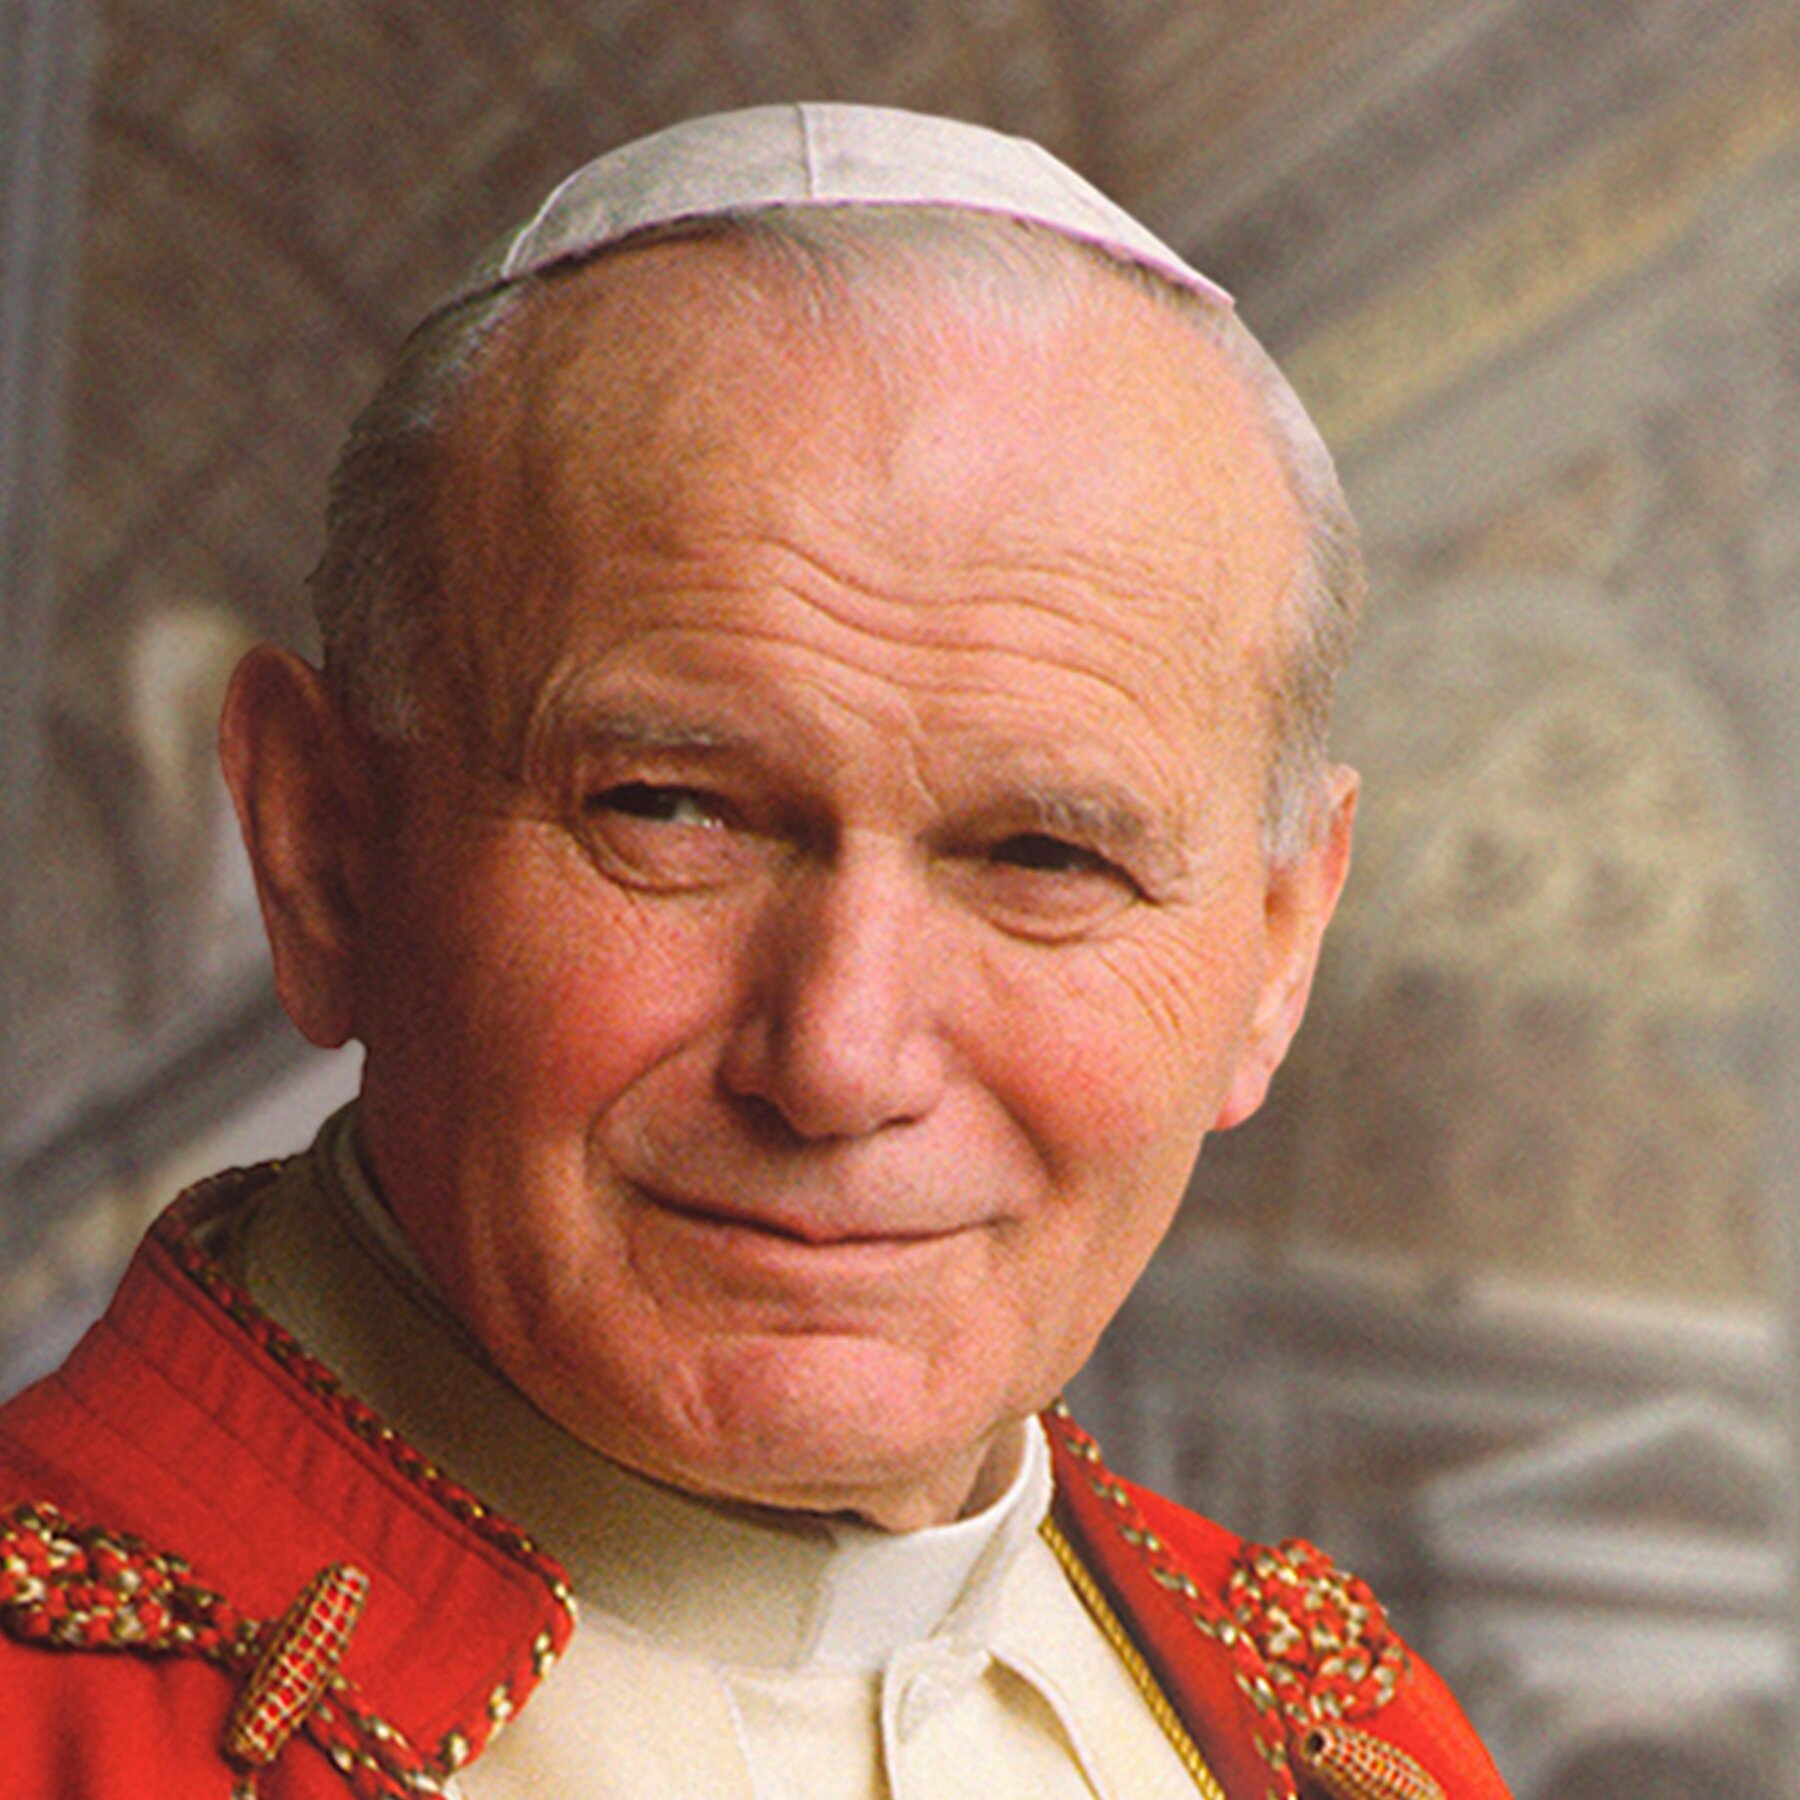 Intercede for us, St. John Paul the Great, that we might see clearly the inexpressible value of every human being.